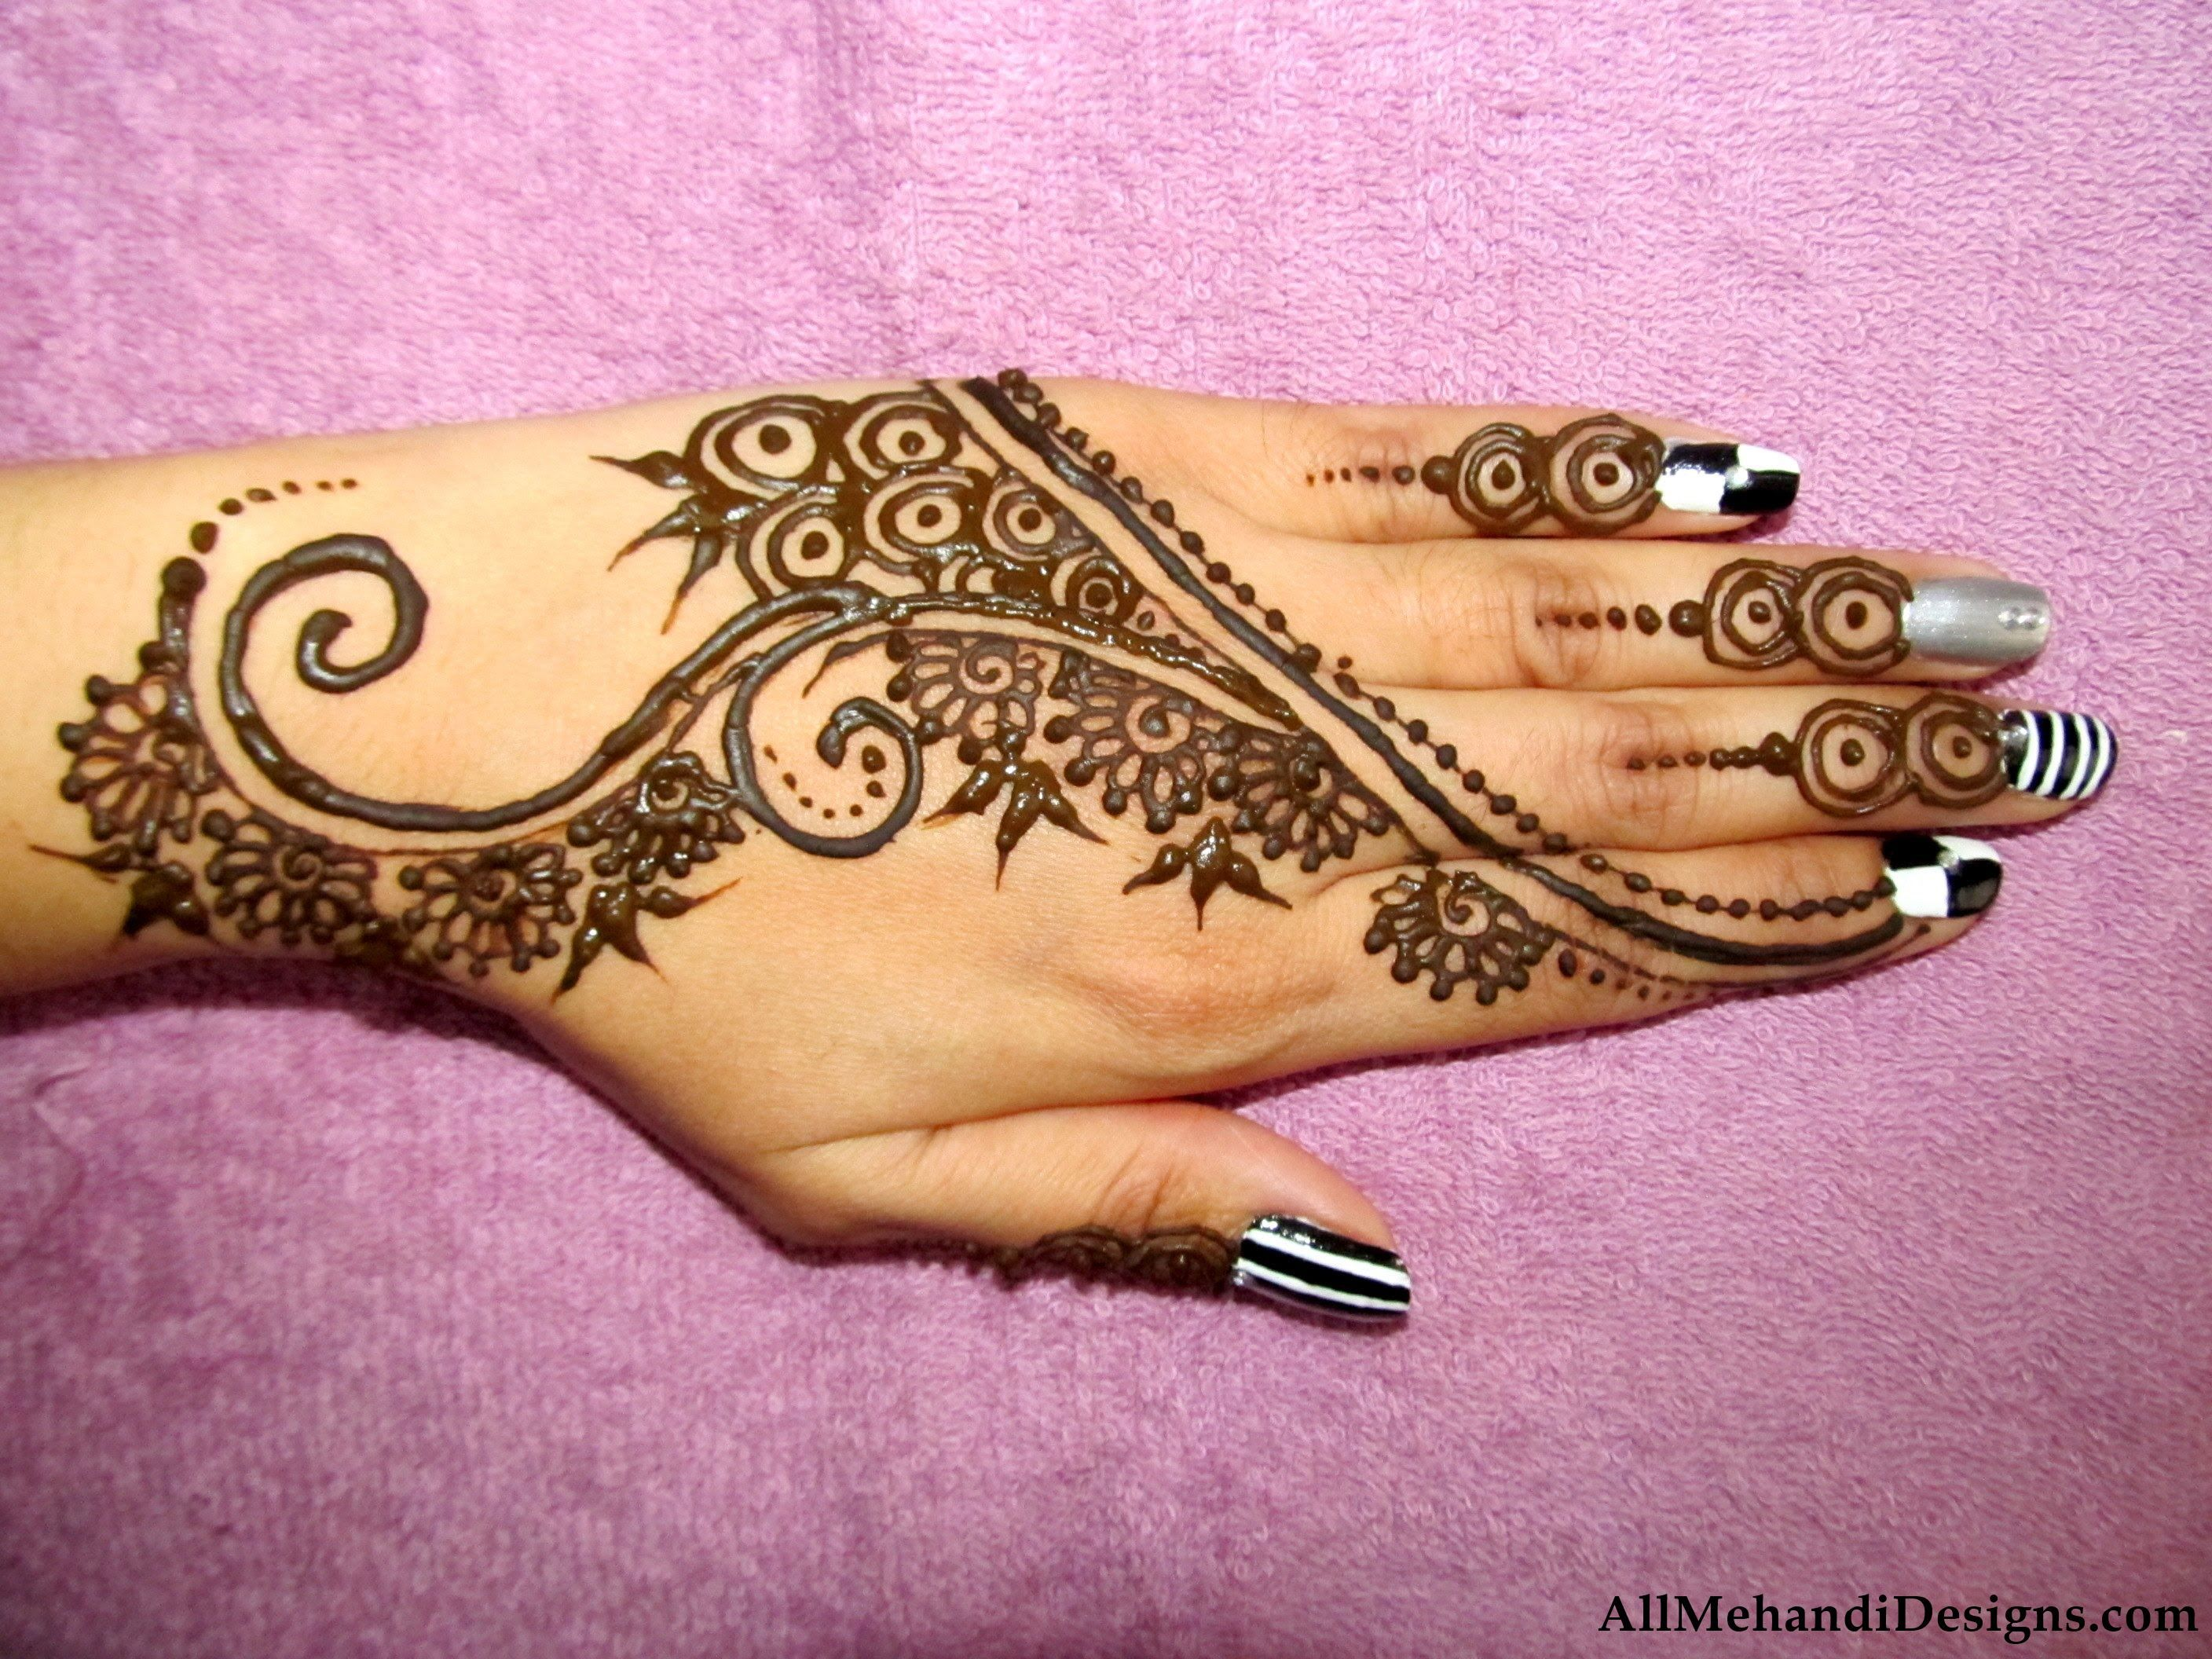 Mehndi Wrist Joint : Mehndi designs or mehandi patterns is widely seen and demanded in